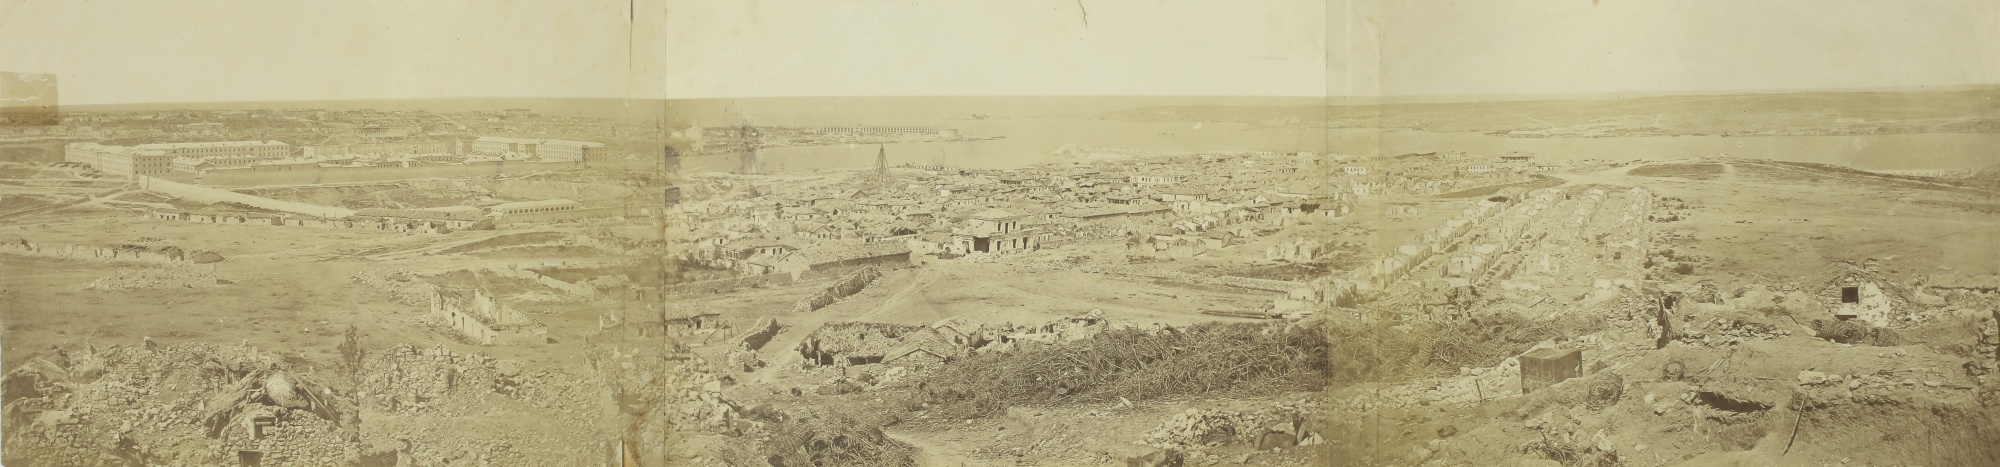 Felice Beato-Panorama Of Sebastopol From The Malakoff Tower, Crimea-1855